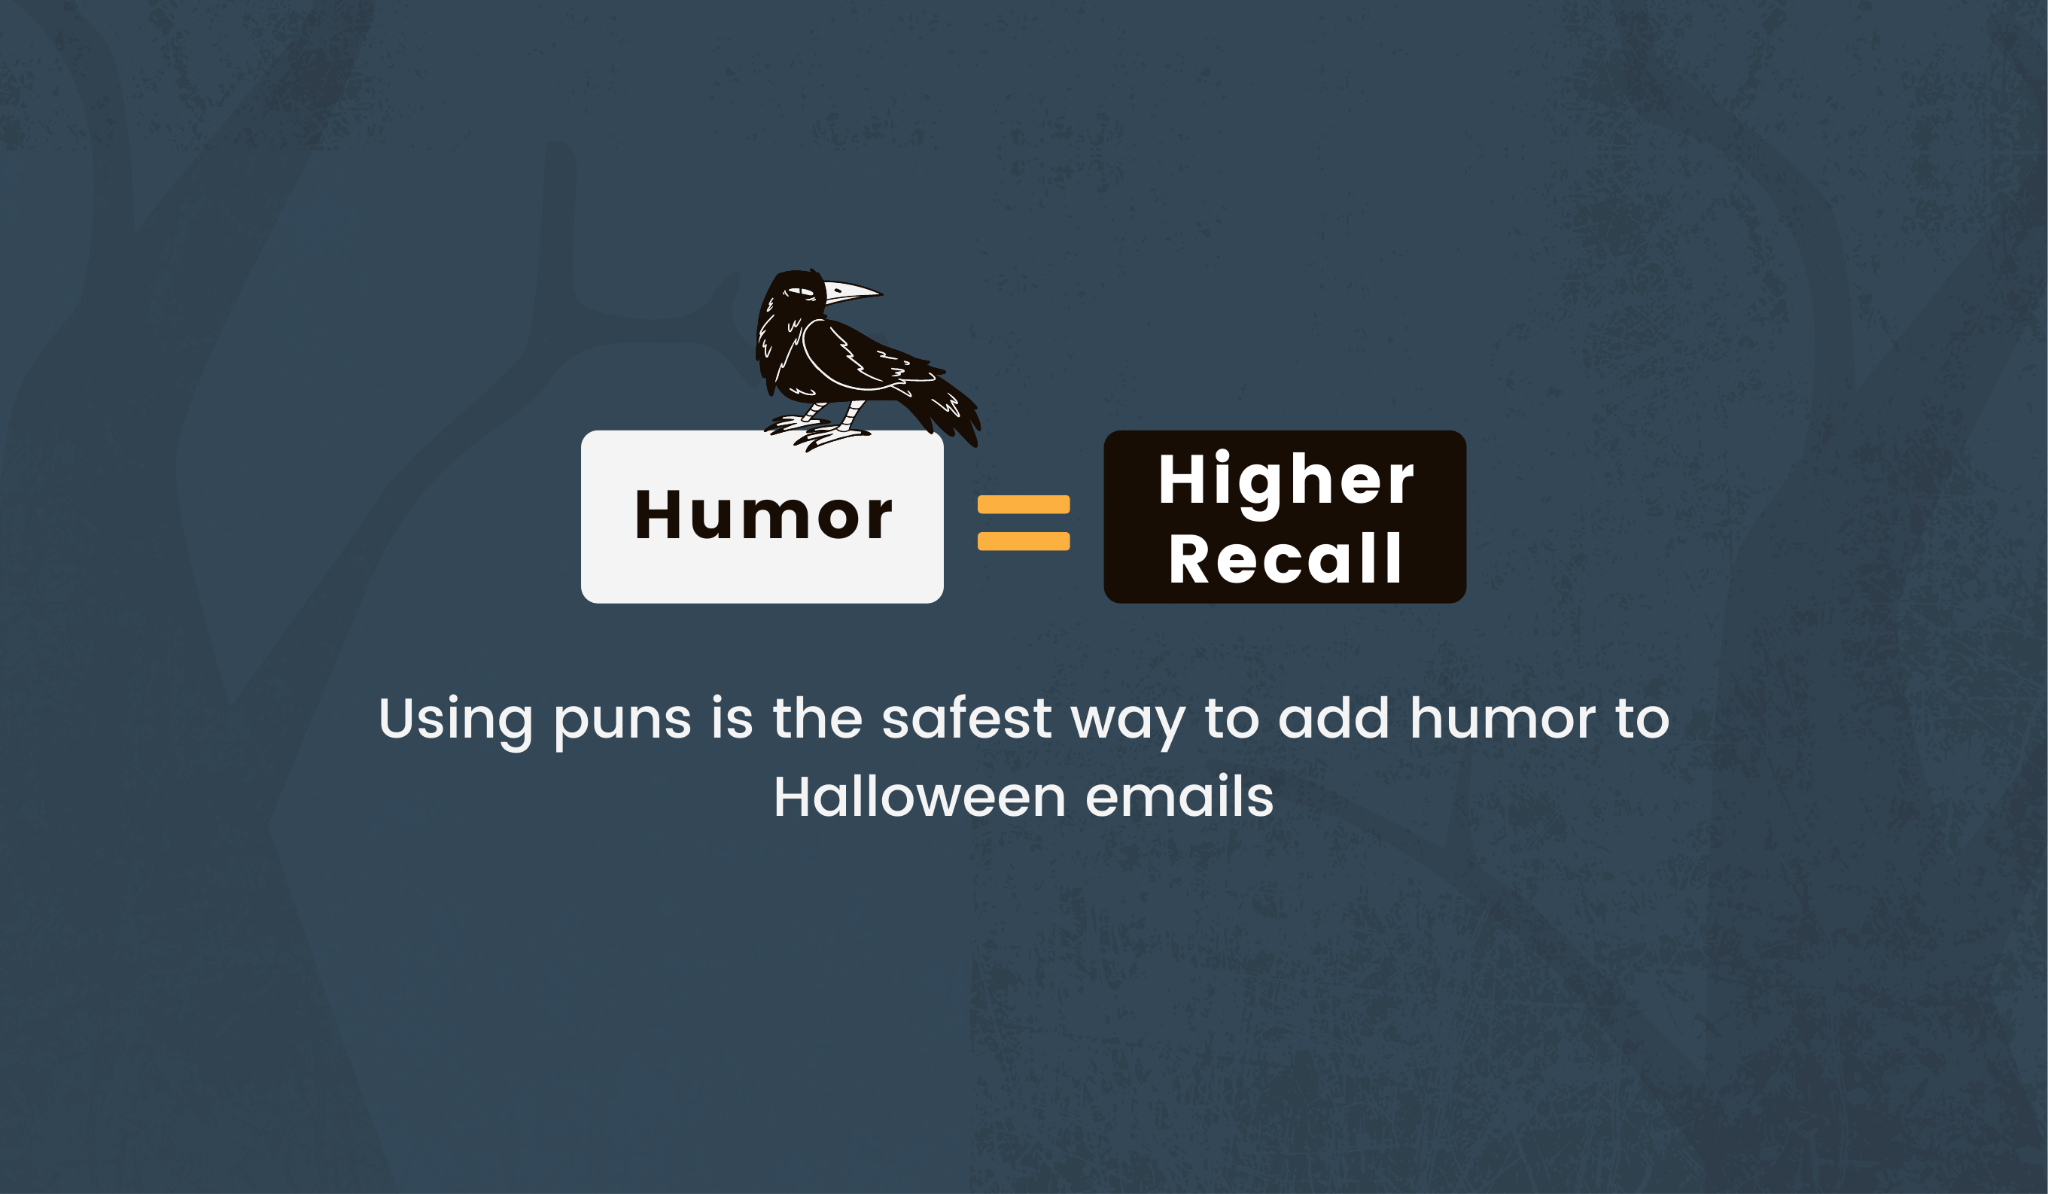 Puns lead to greater recall